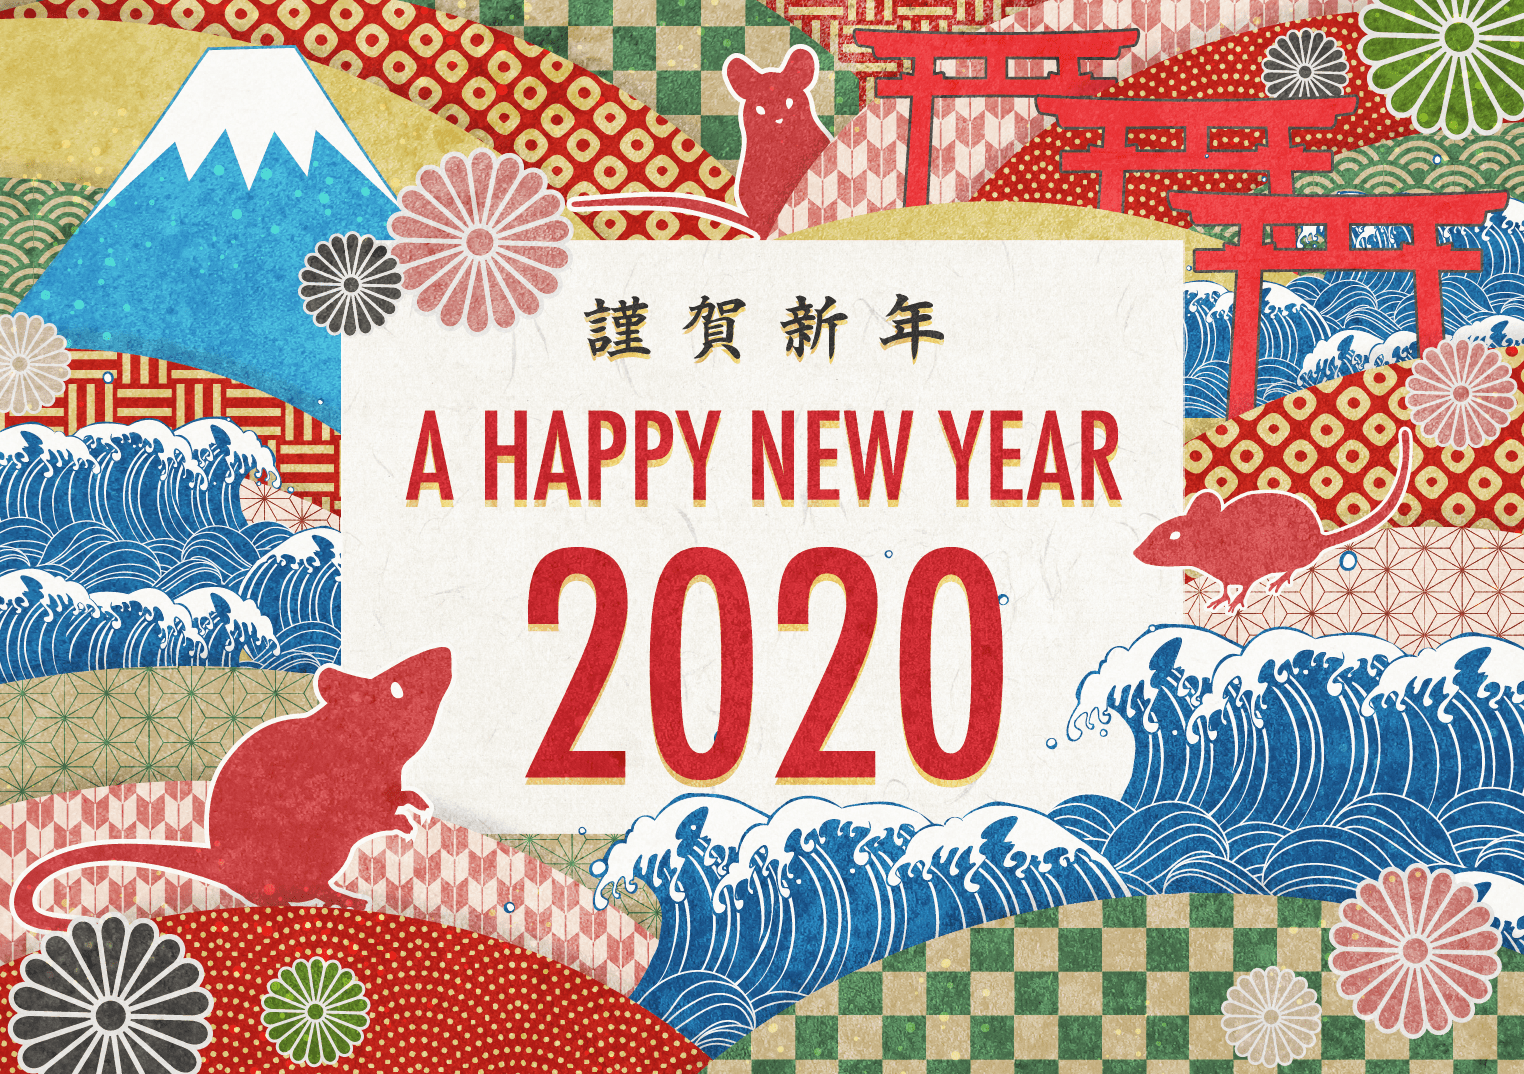 2020 Travel Trends inJapan